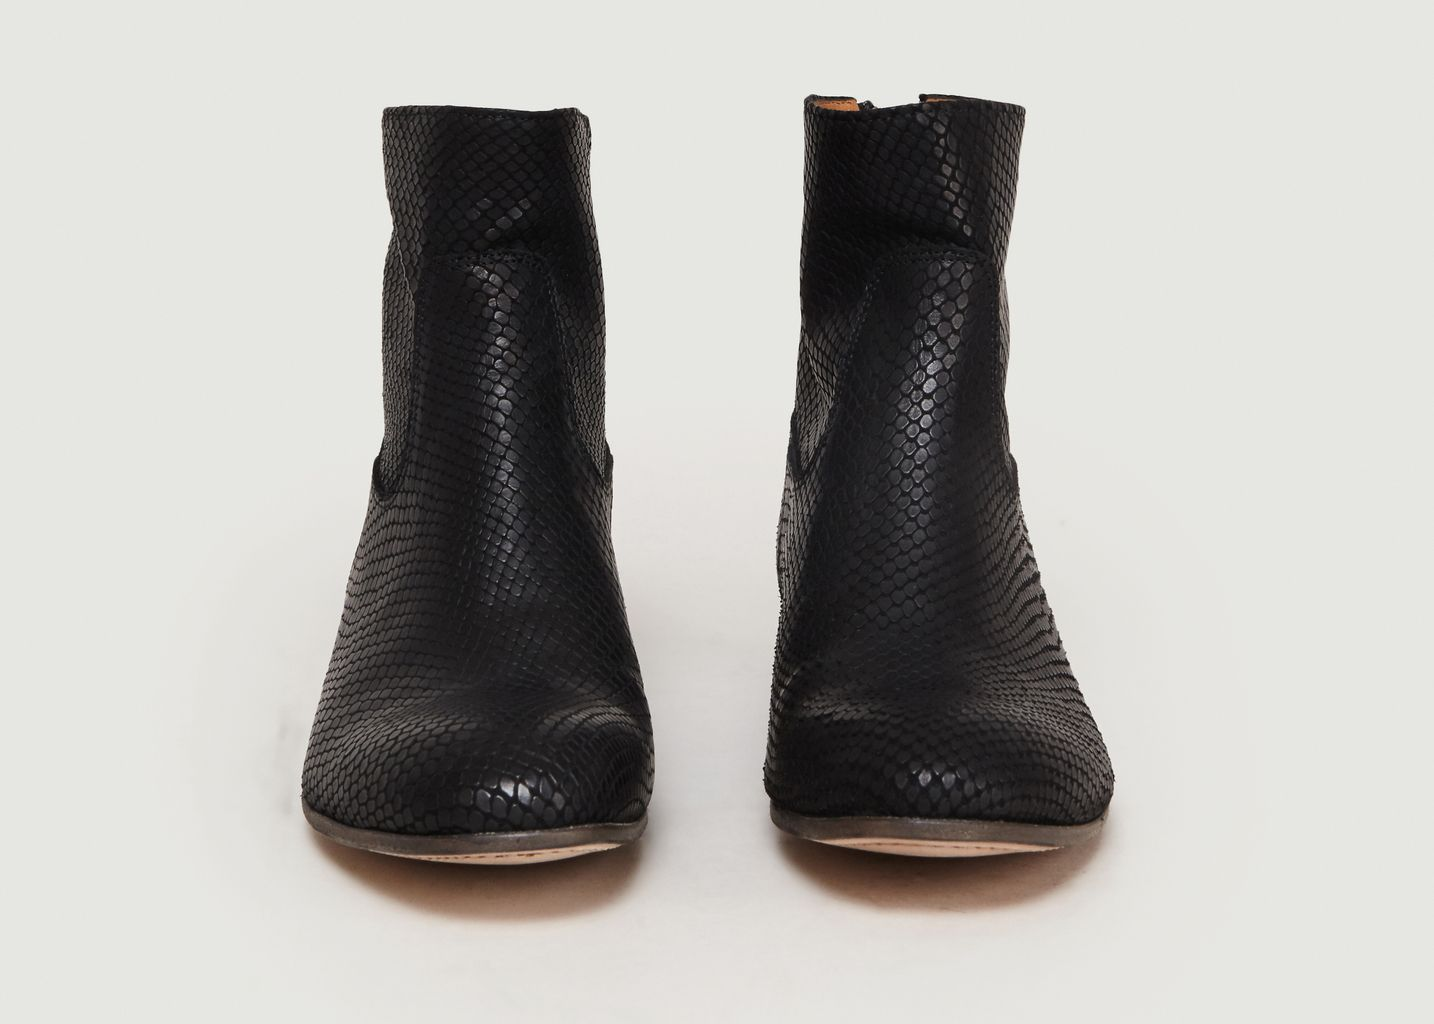 Bottines 7227 - Anthology Paris